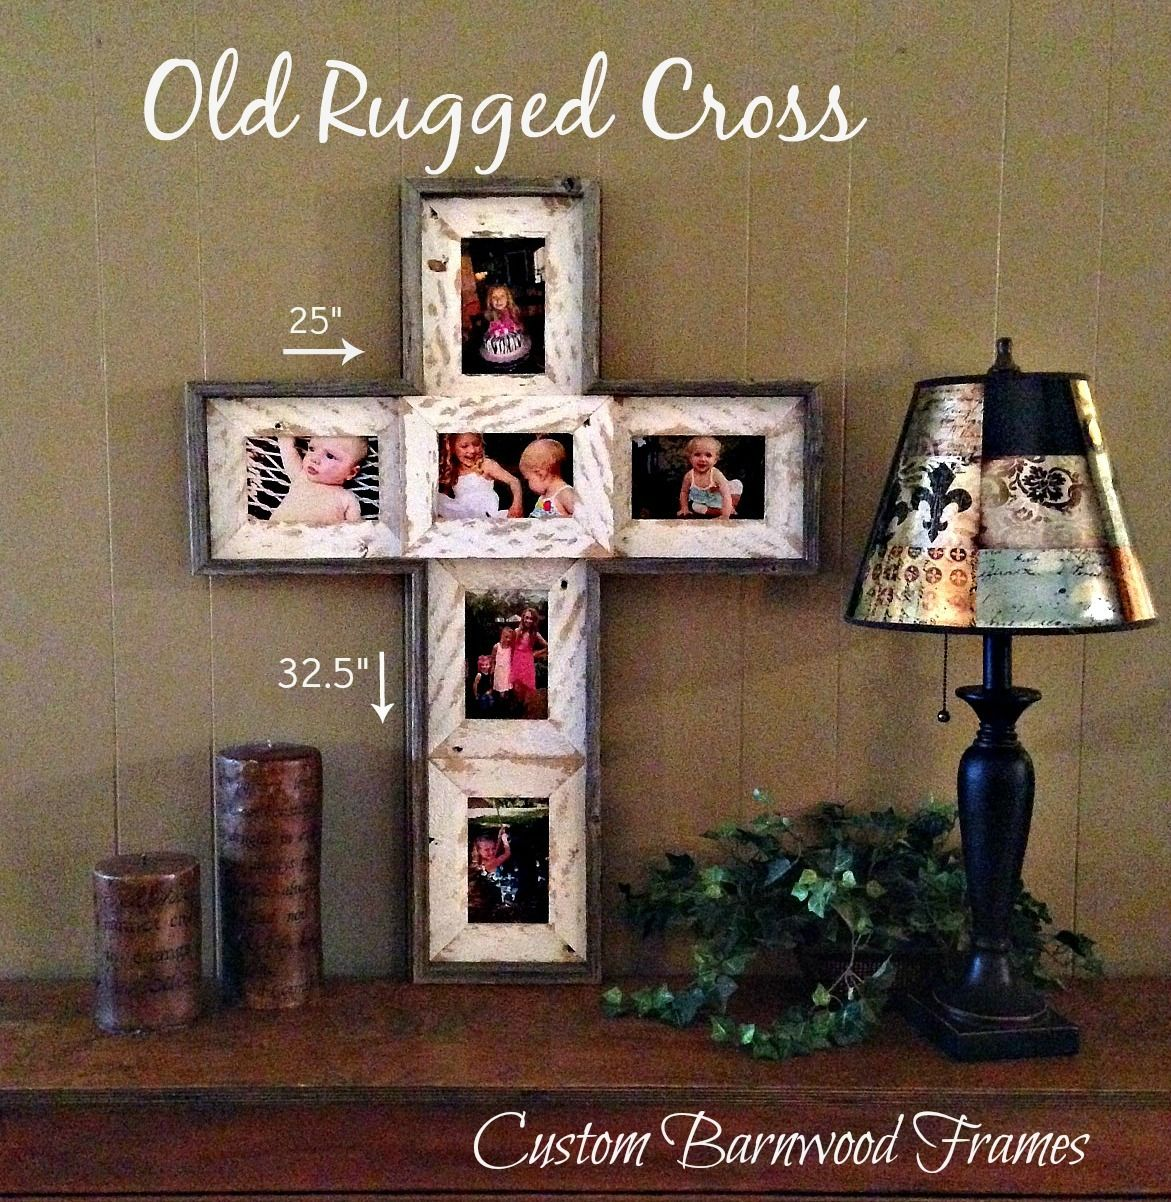 wooden cross frames from httpwwwsmallwoodhomecomcross frames 2 i want one crosses pinterest mom pictures and christmas presents